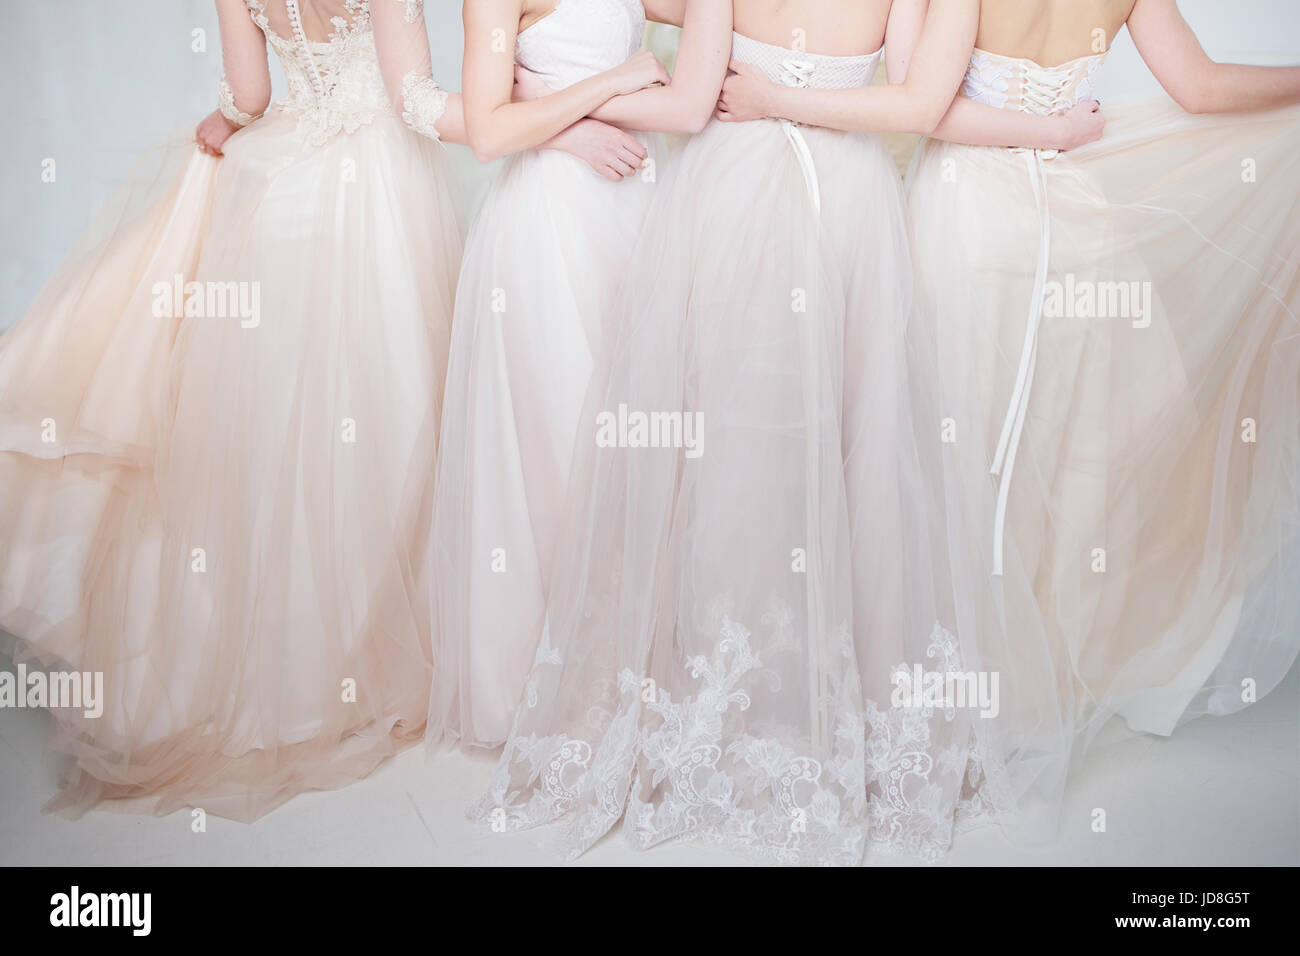 8629b7845767 Four beautiful bridesmaid dresses in pastel colors are in each other's  arms. Back, close-up lace skirts